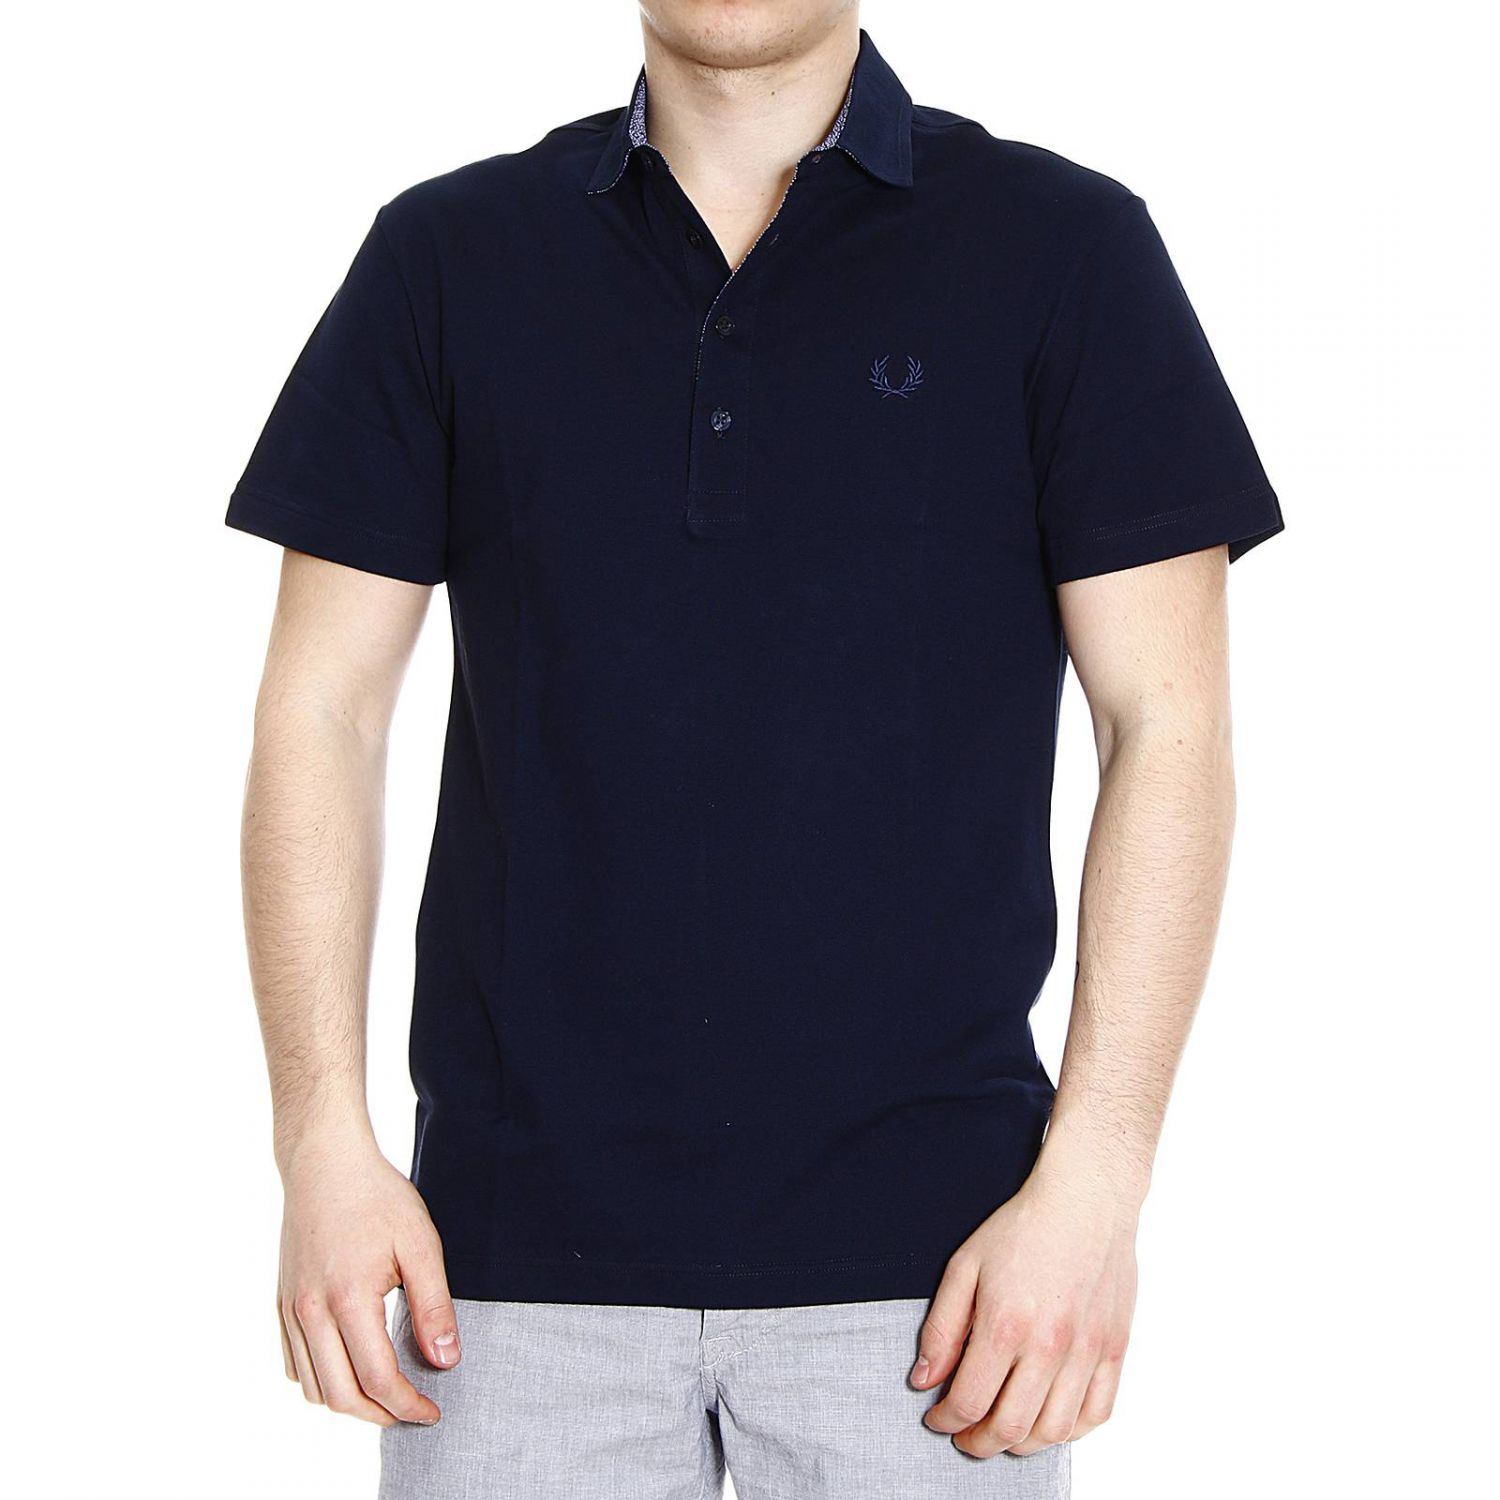 Fred perry t shirt polo piquet half sleeve slimfit stretch for Full sleeve polo t shirts